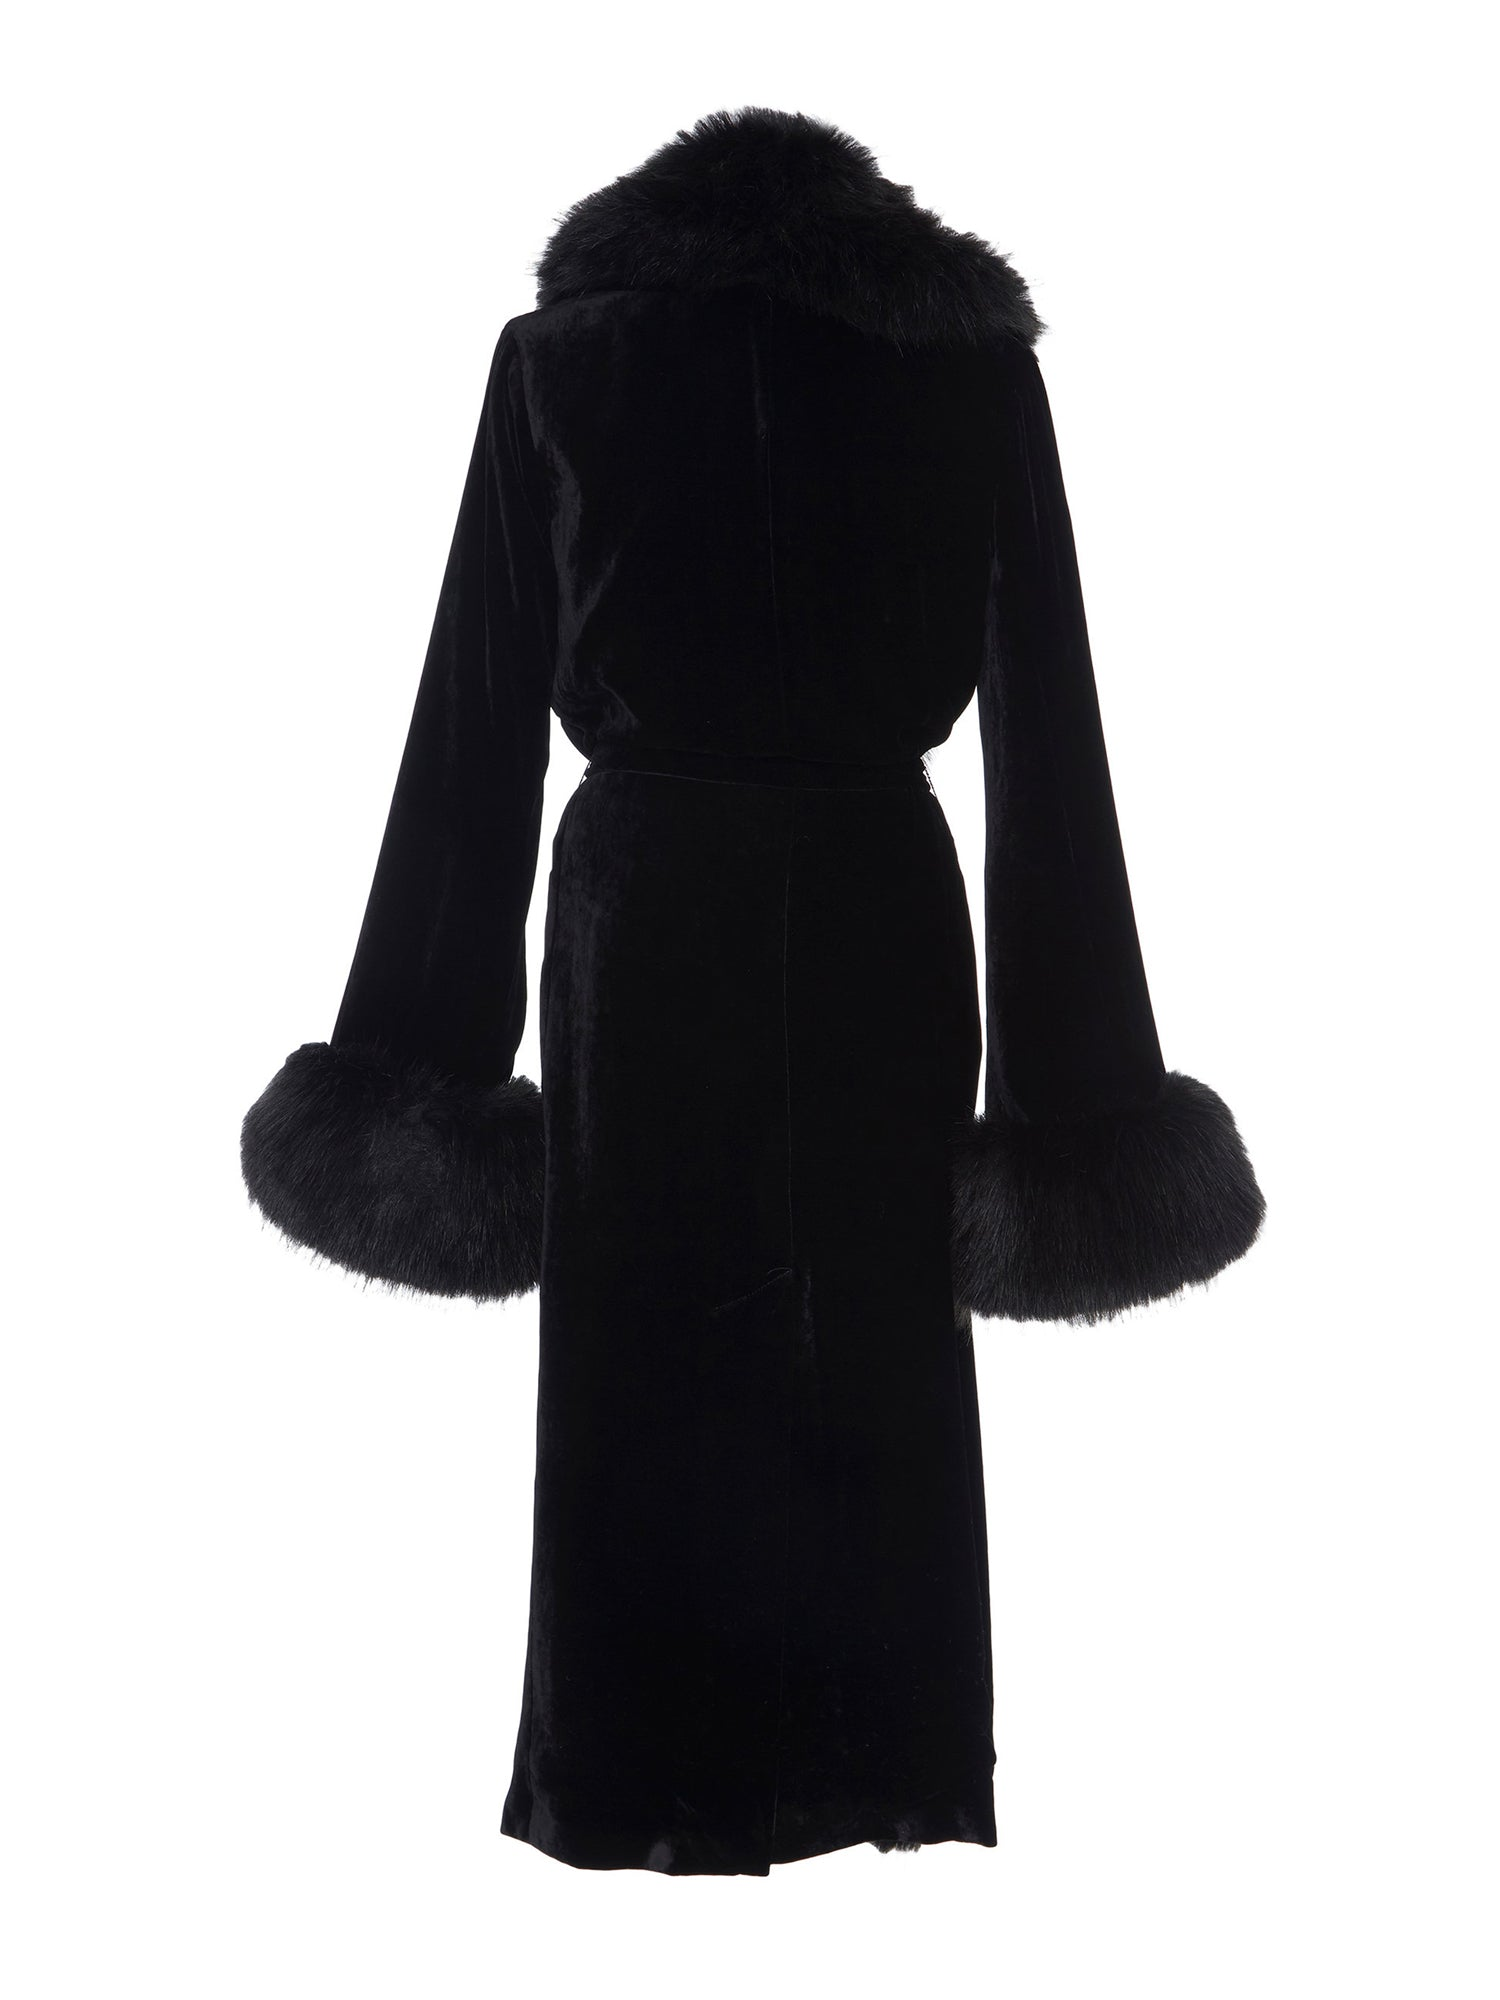 A Packshot Of Marei1998's Iconic Powderpuff Long Velvet Coat In Black Color. The Silk Velvet Material, Combined With Faux Fur Trims, Creates A Contemporary Vintage Look. Featuring Wide Lapel Collar And Bell Sleeves, It Is Finished With A Self-Tie Belt To Define The Waist. Back View. Resort 2020 Collection - Furless Friendship.